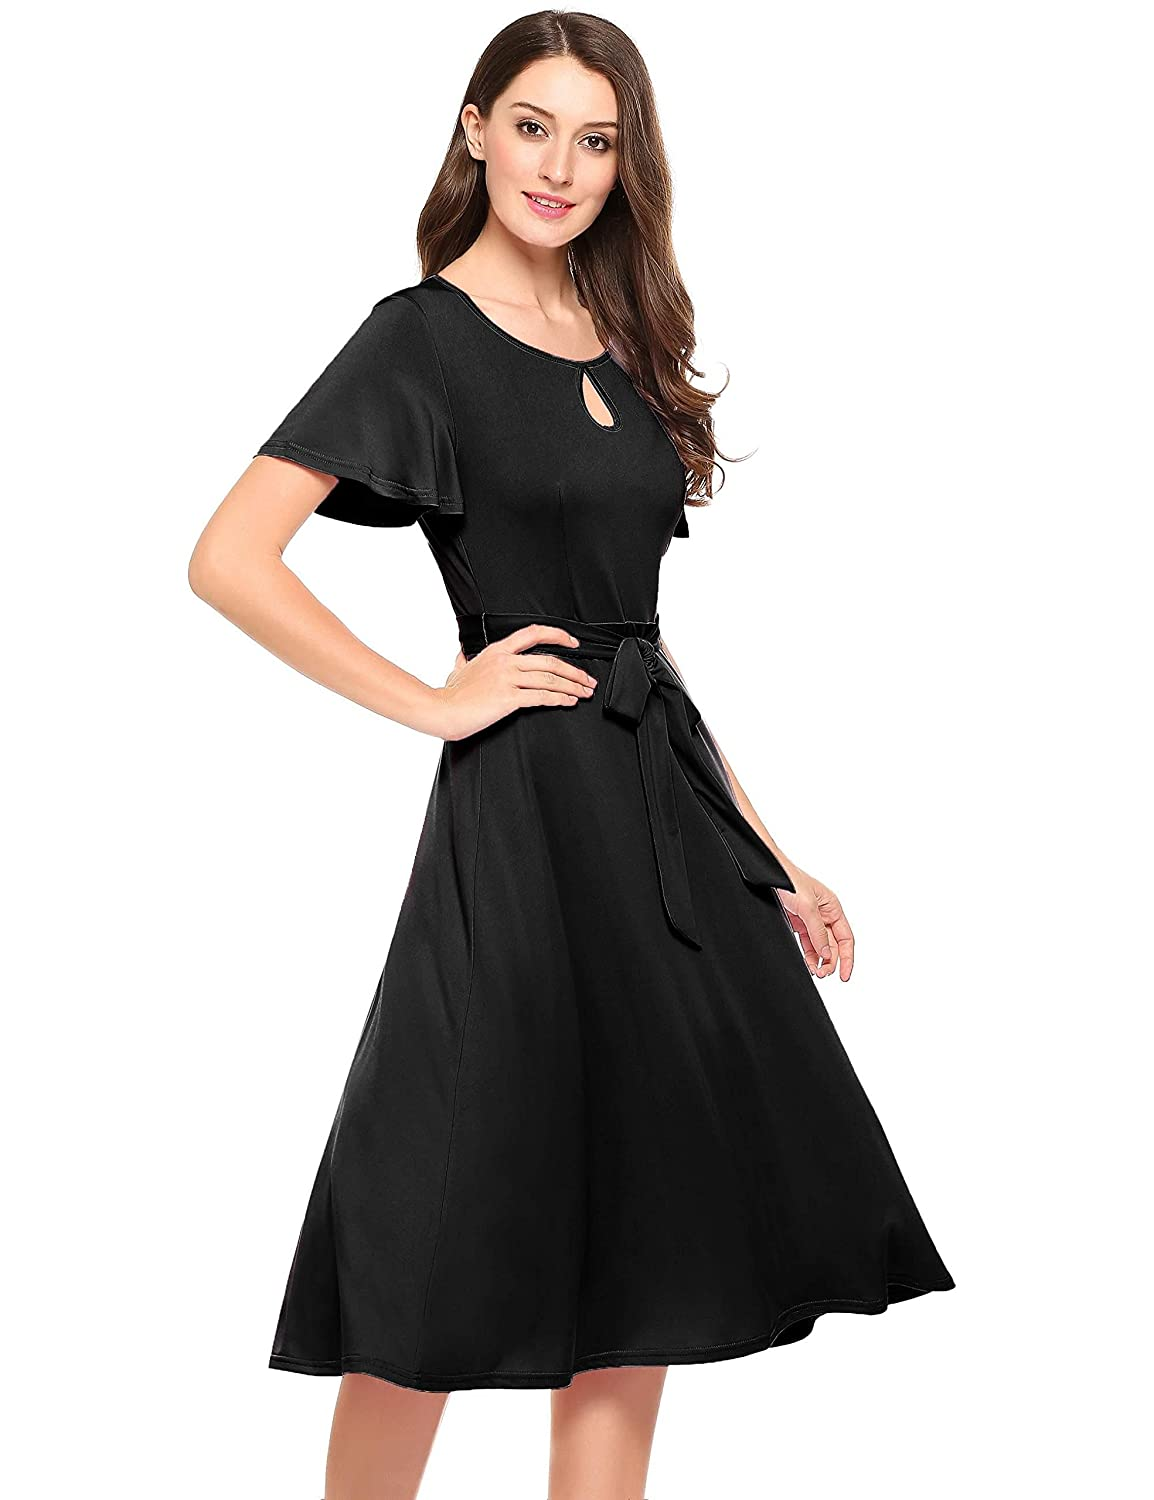 ccdb1a78ce5 dozenla Stunning Curvy Beautiful Fashion Sexy Elegant Tunic Dress Casual  Dress for Women Short Dress for Party Dresses at Amazon Women s Clothing  store